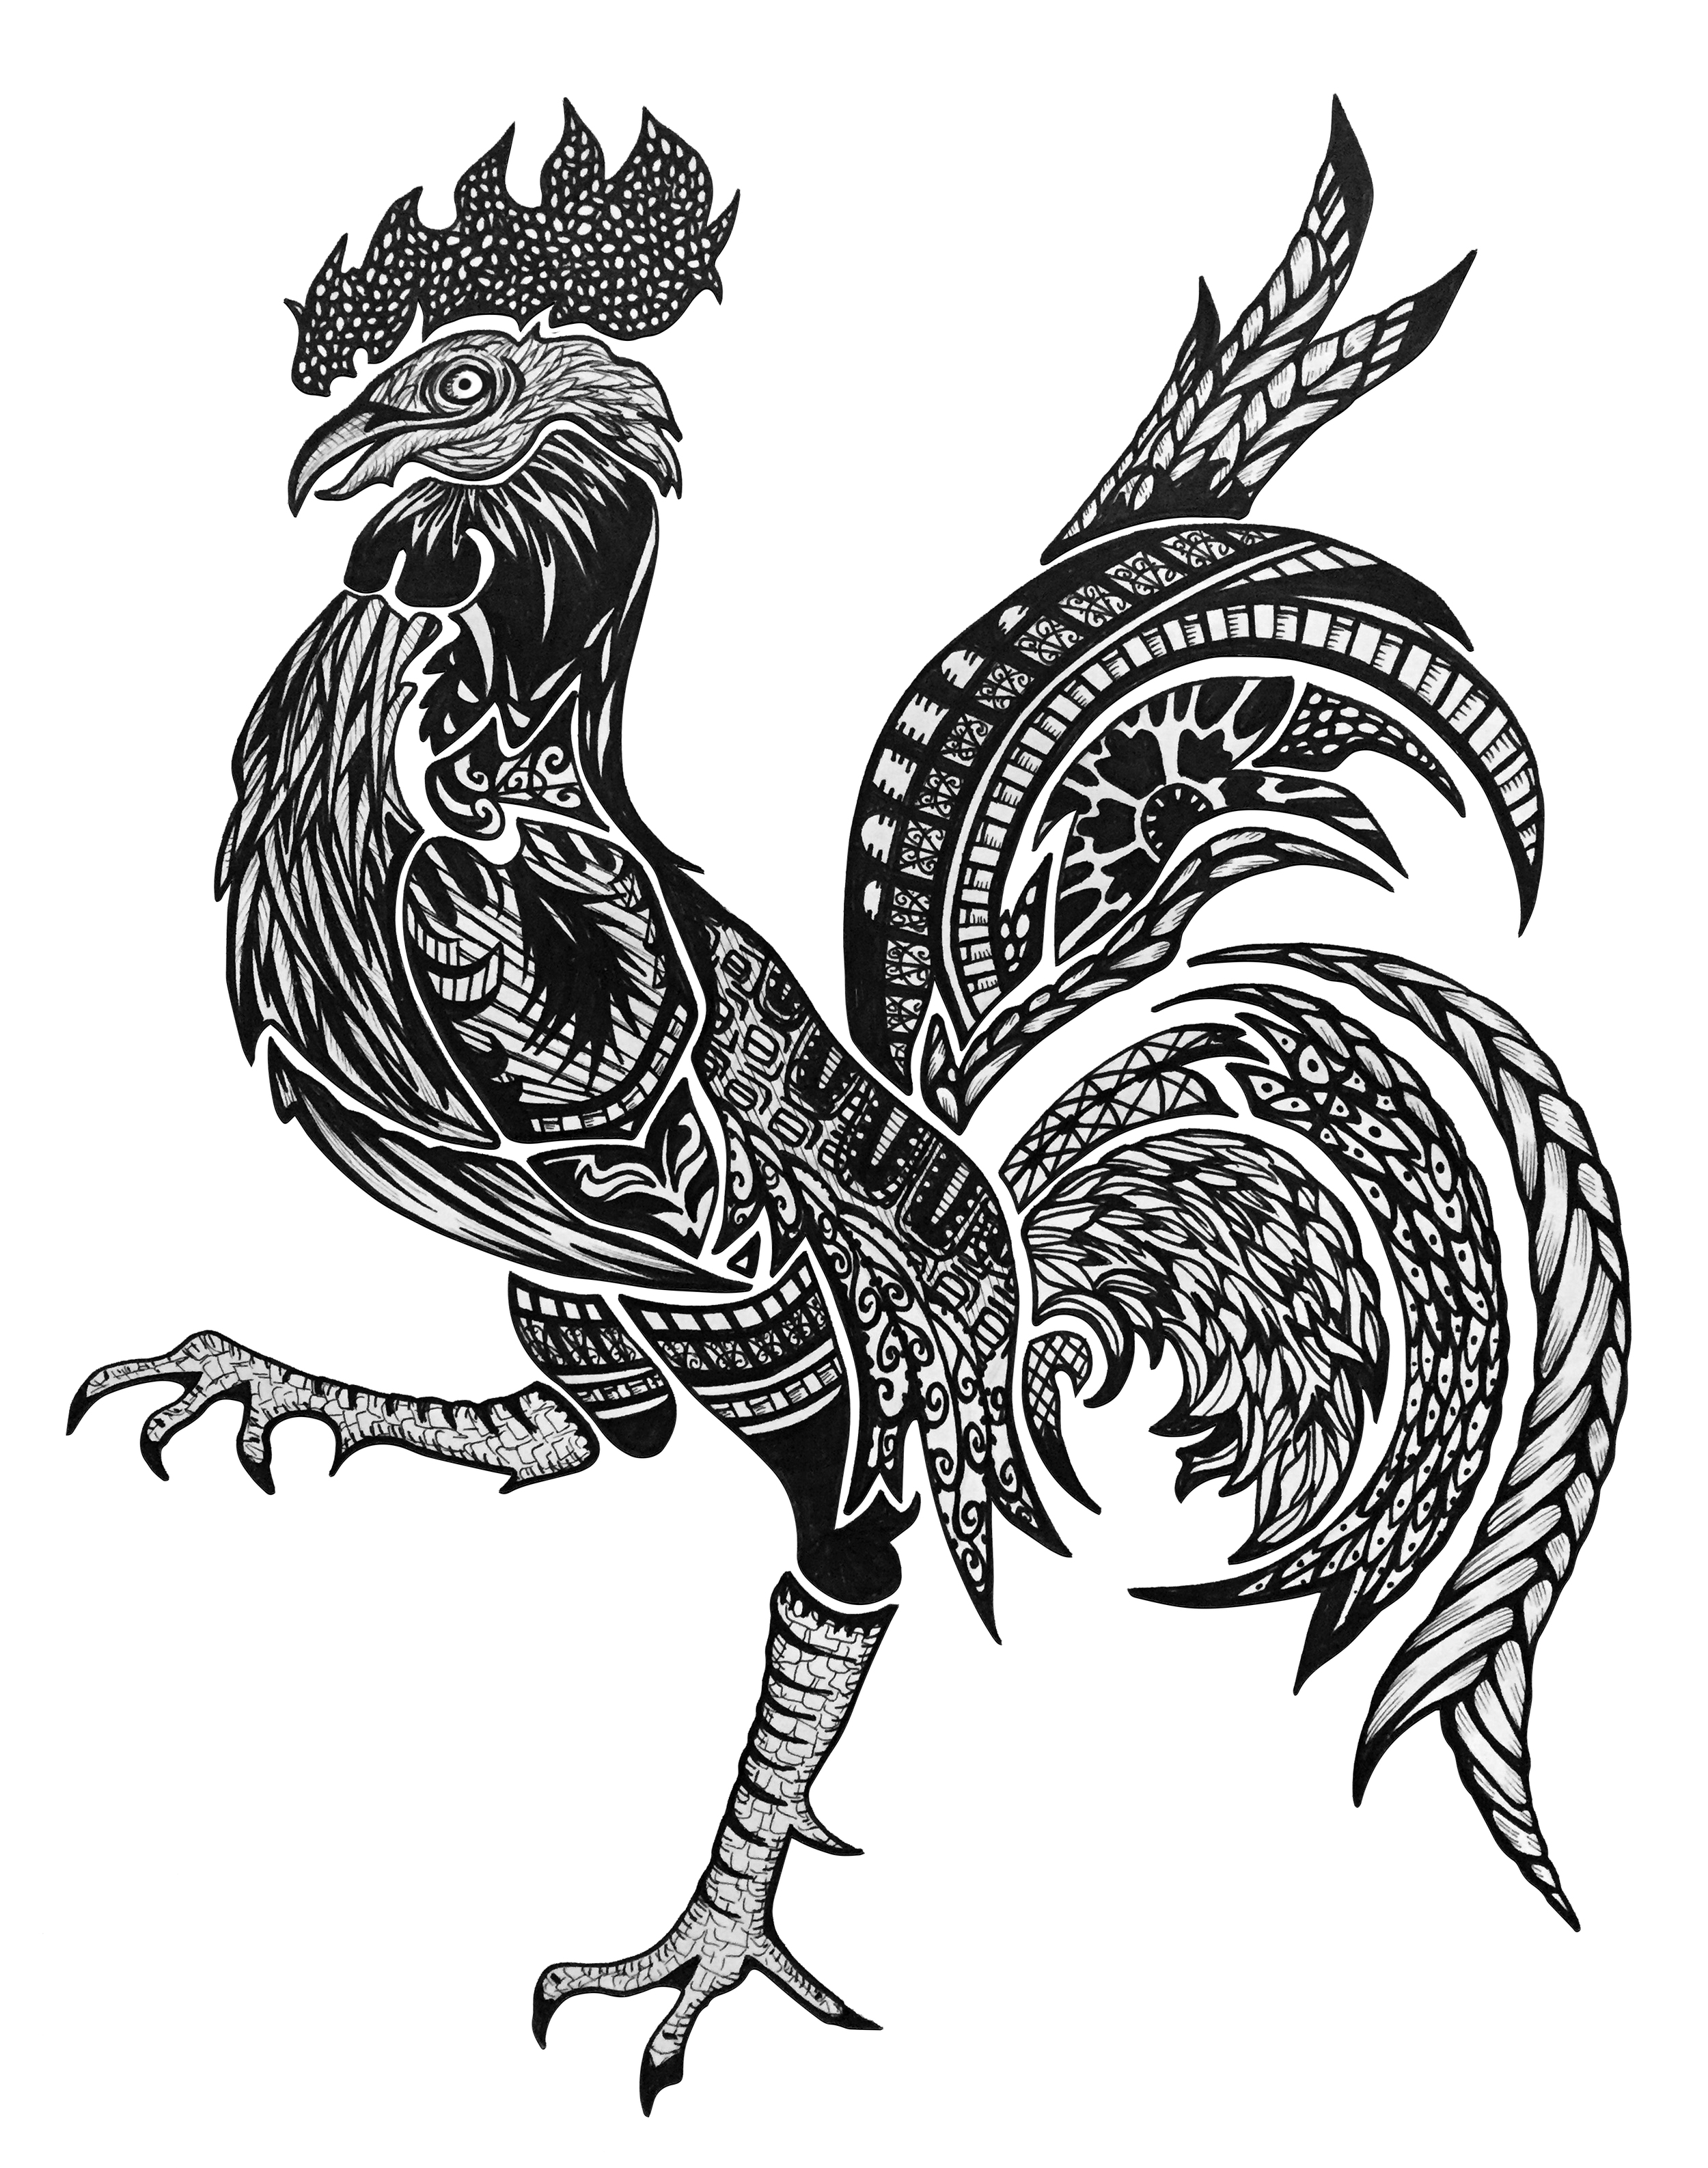 French Rooster; Inspired by Parisean Architecture